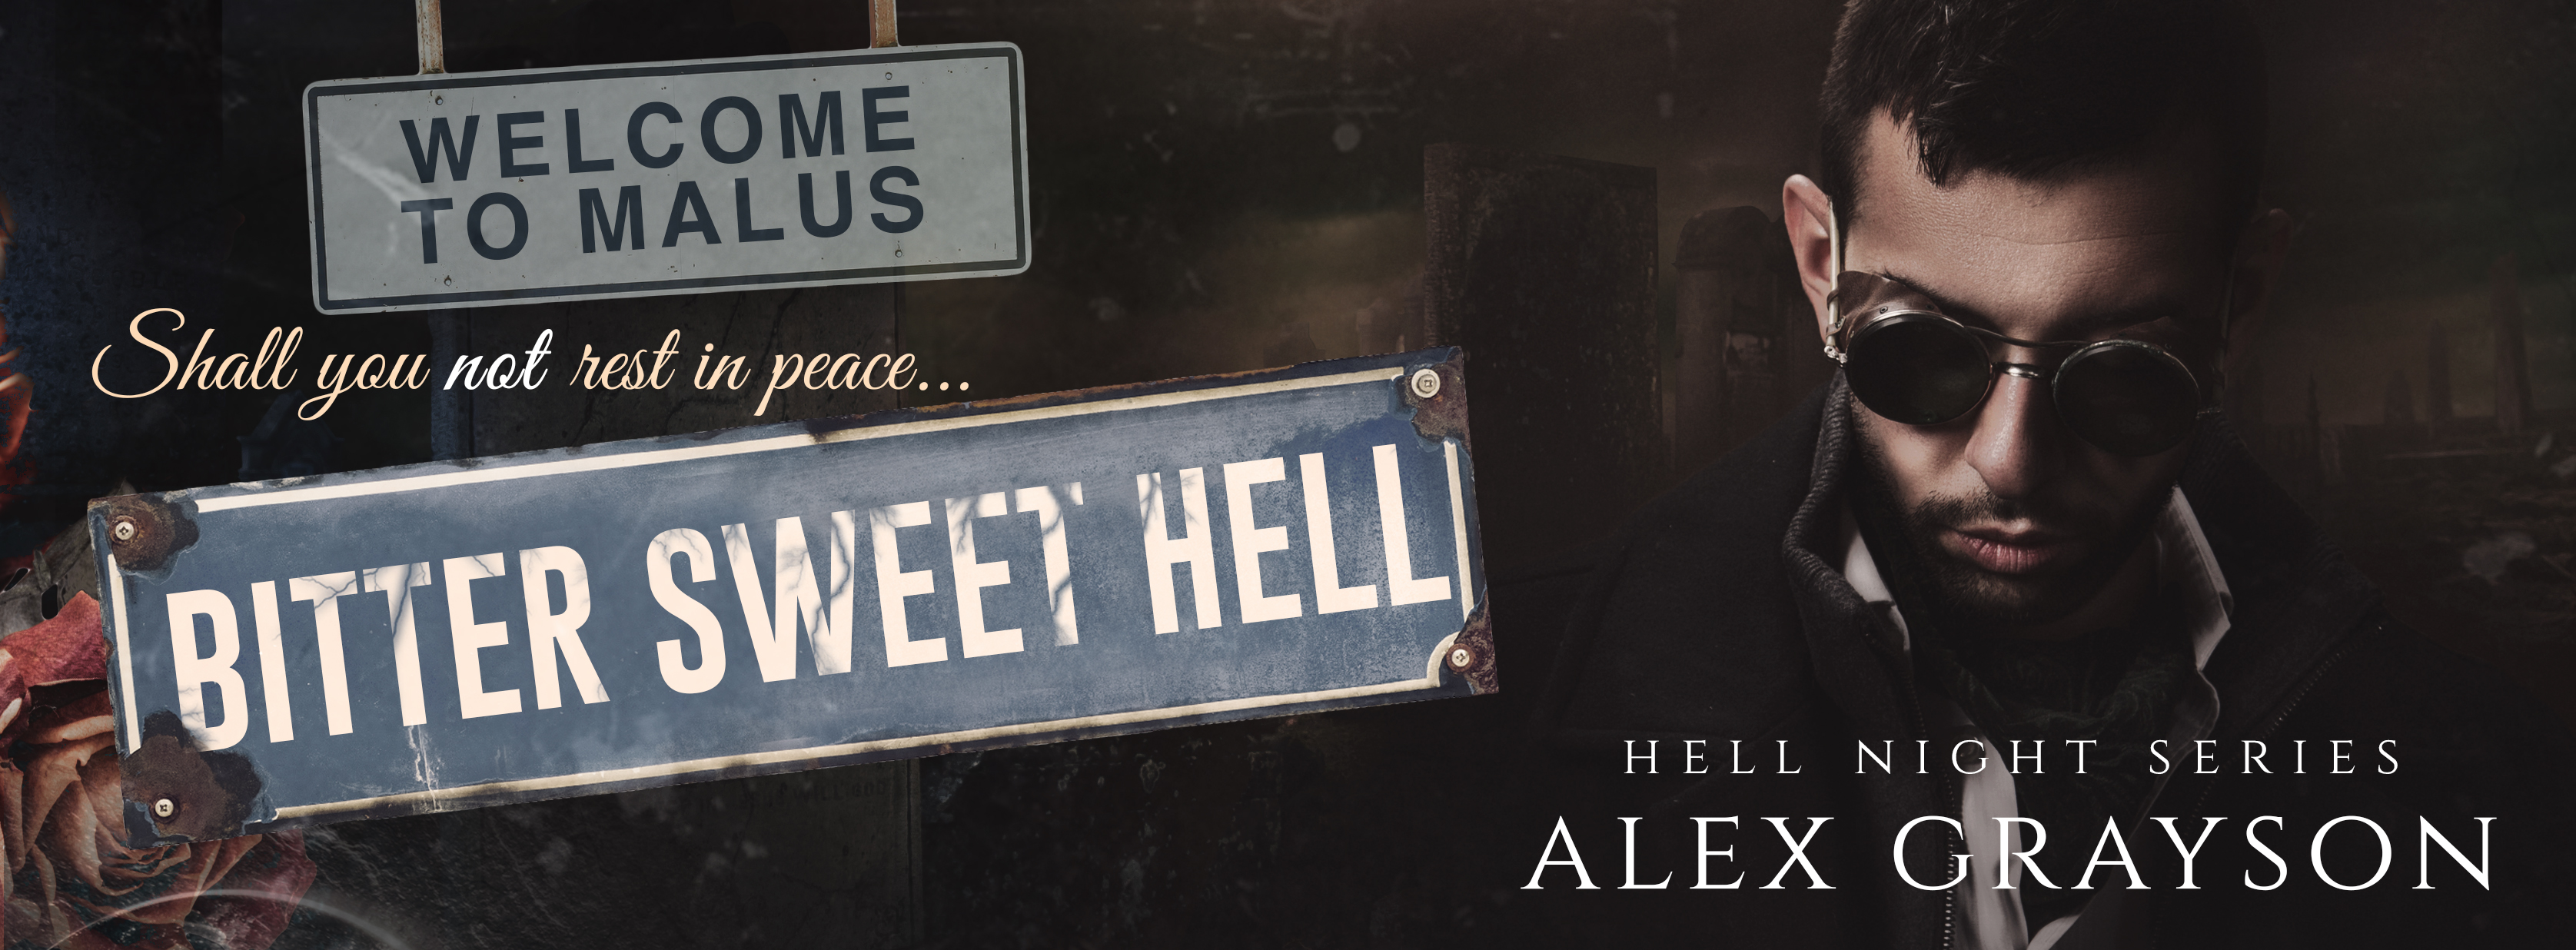 BITTER SWEET HELL by Alex Grayson – Available Now!